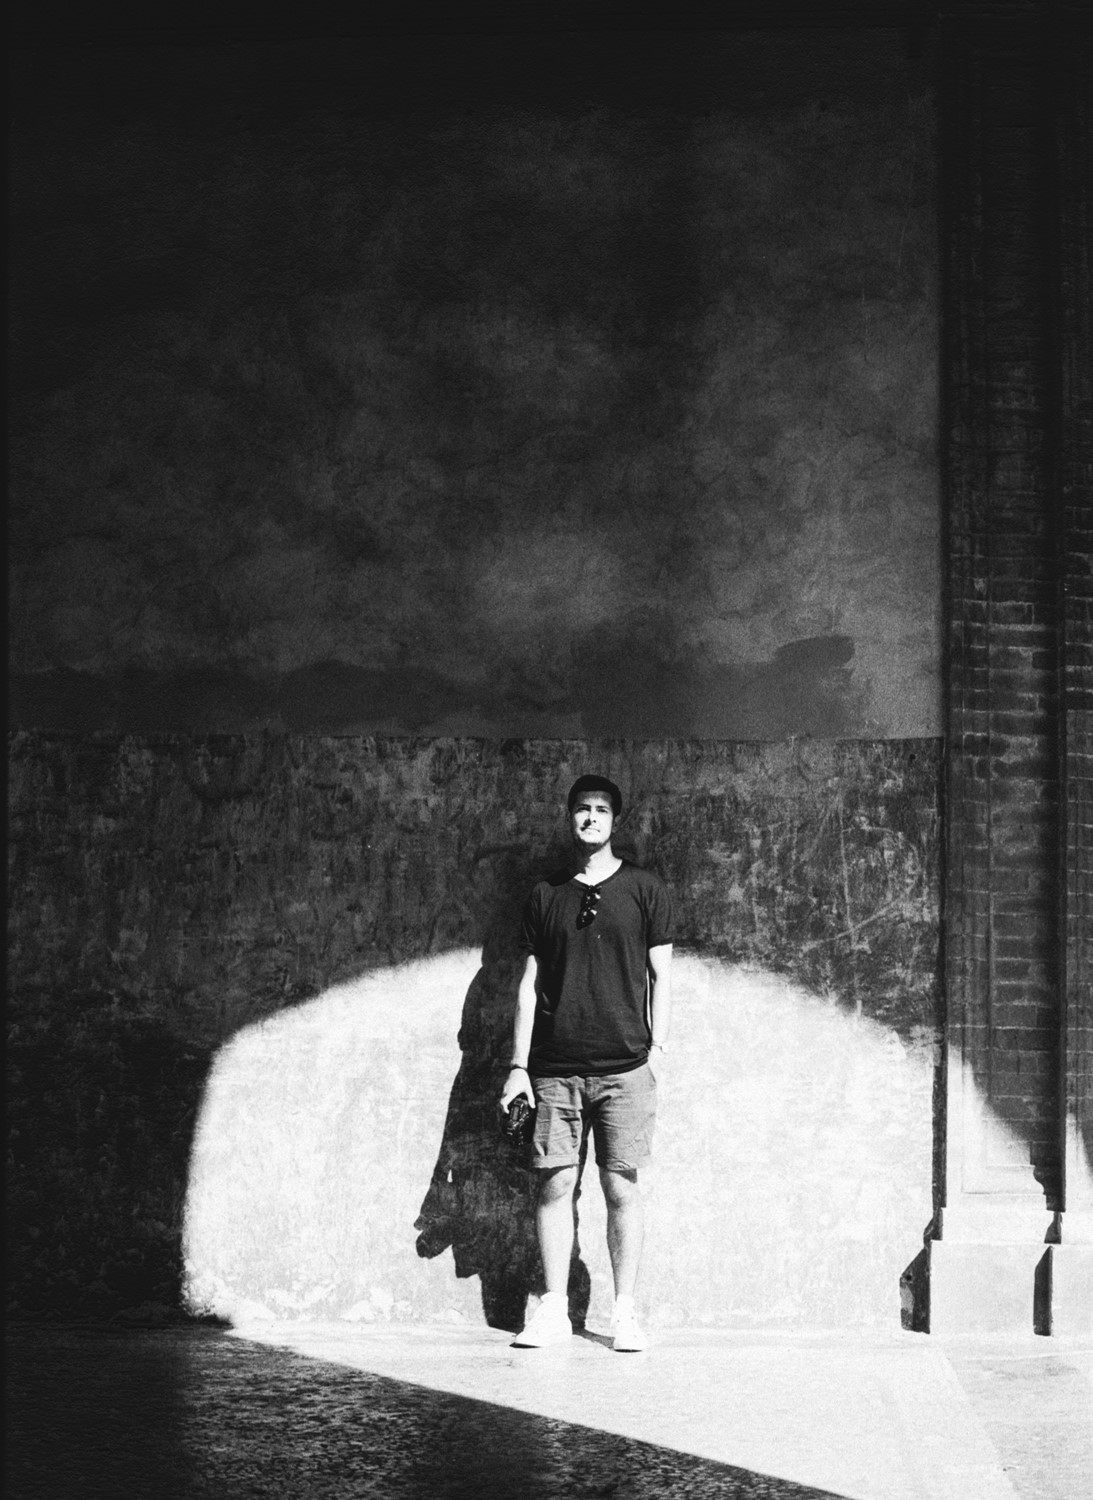 shadow-bologna.jpg